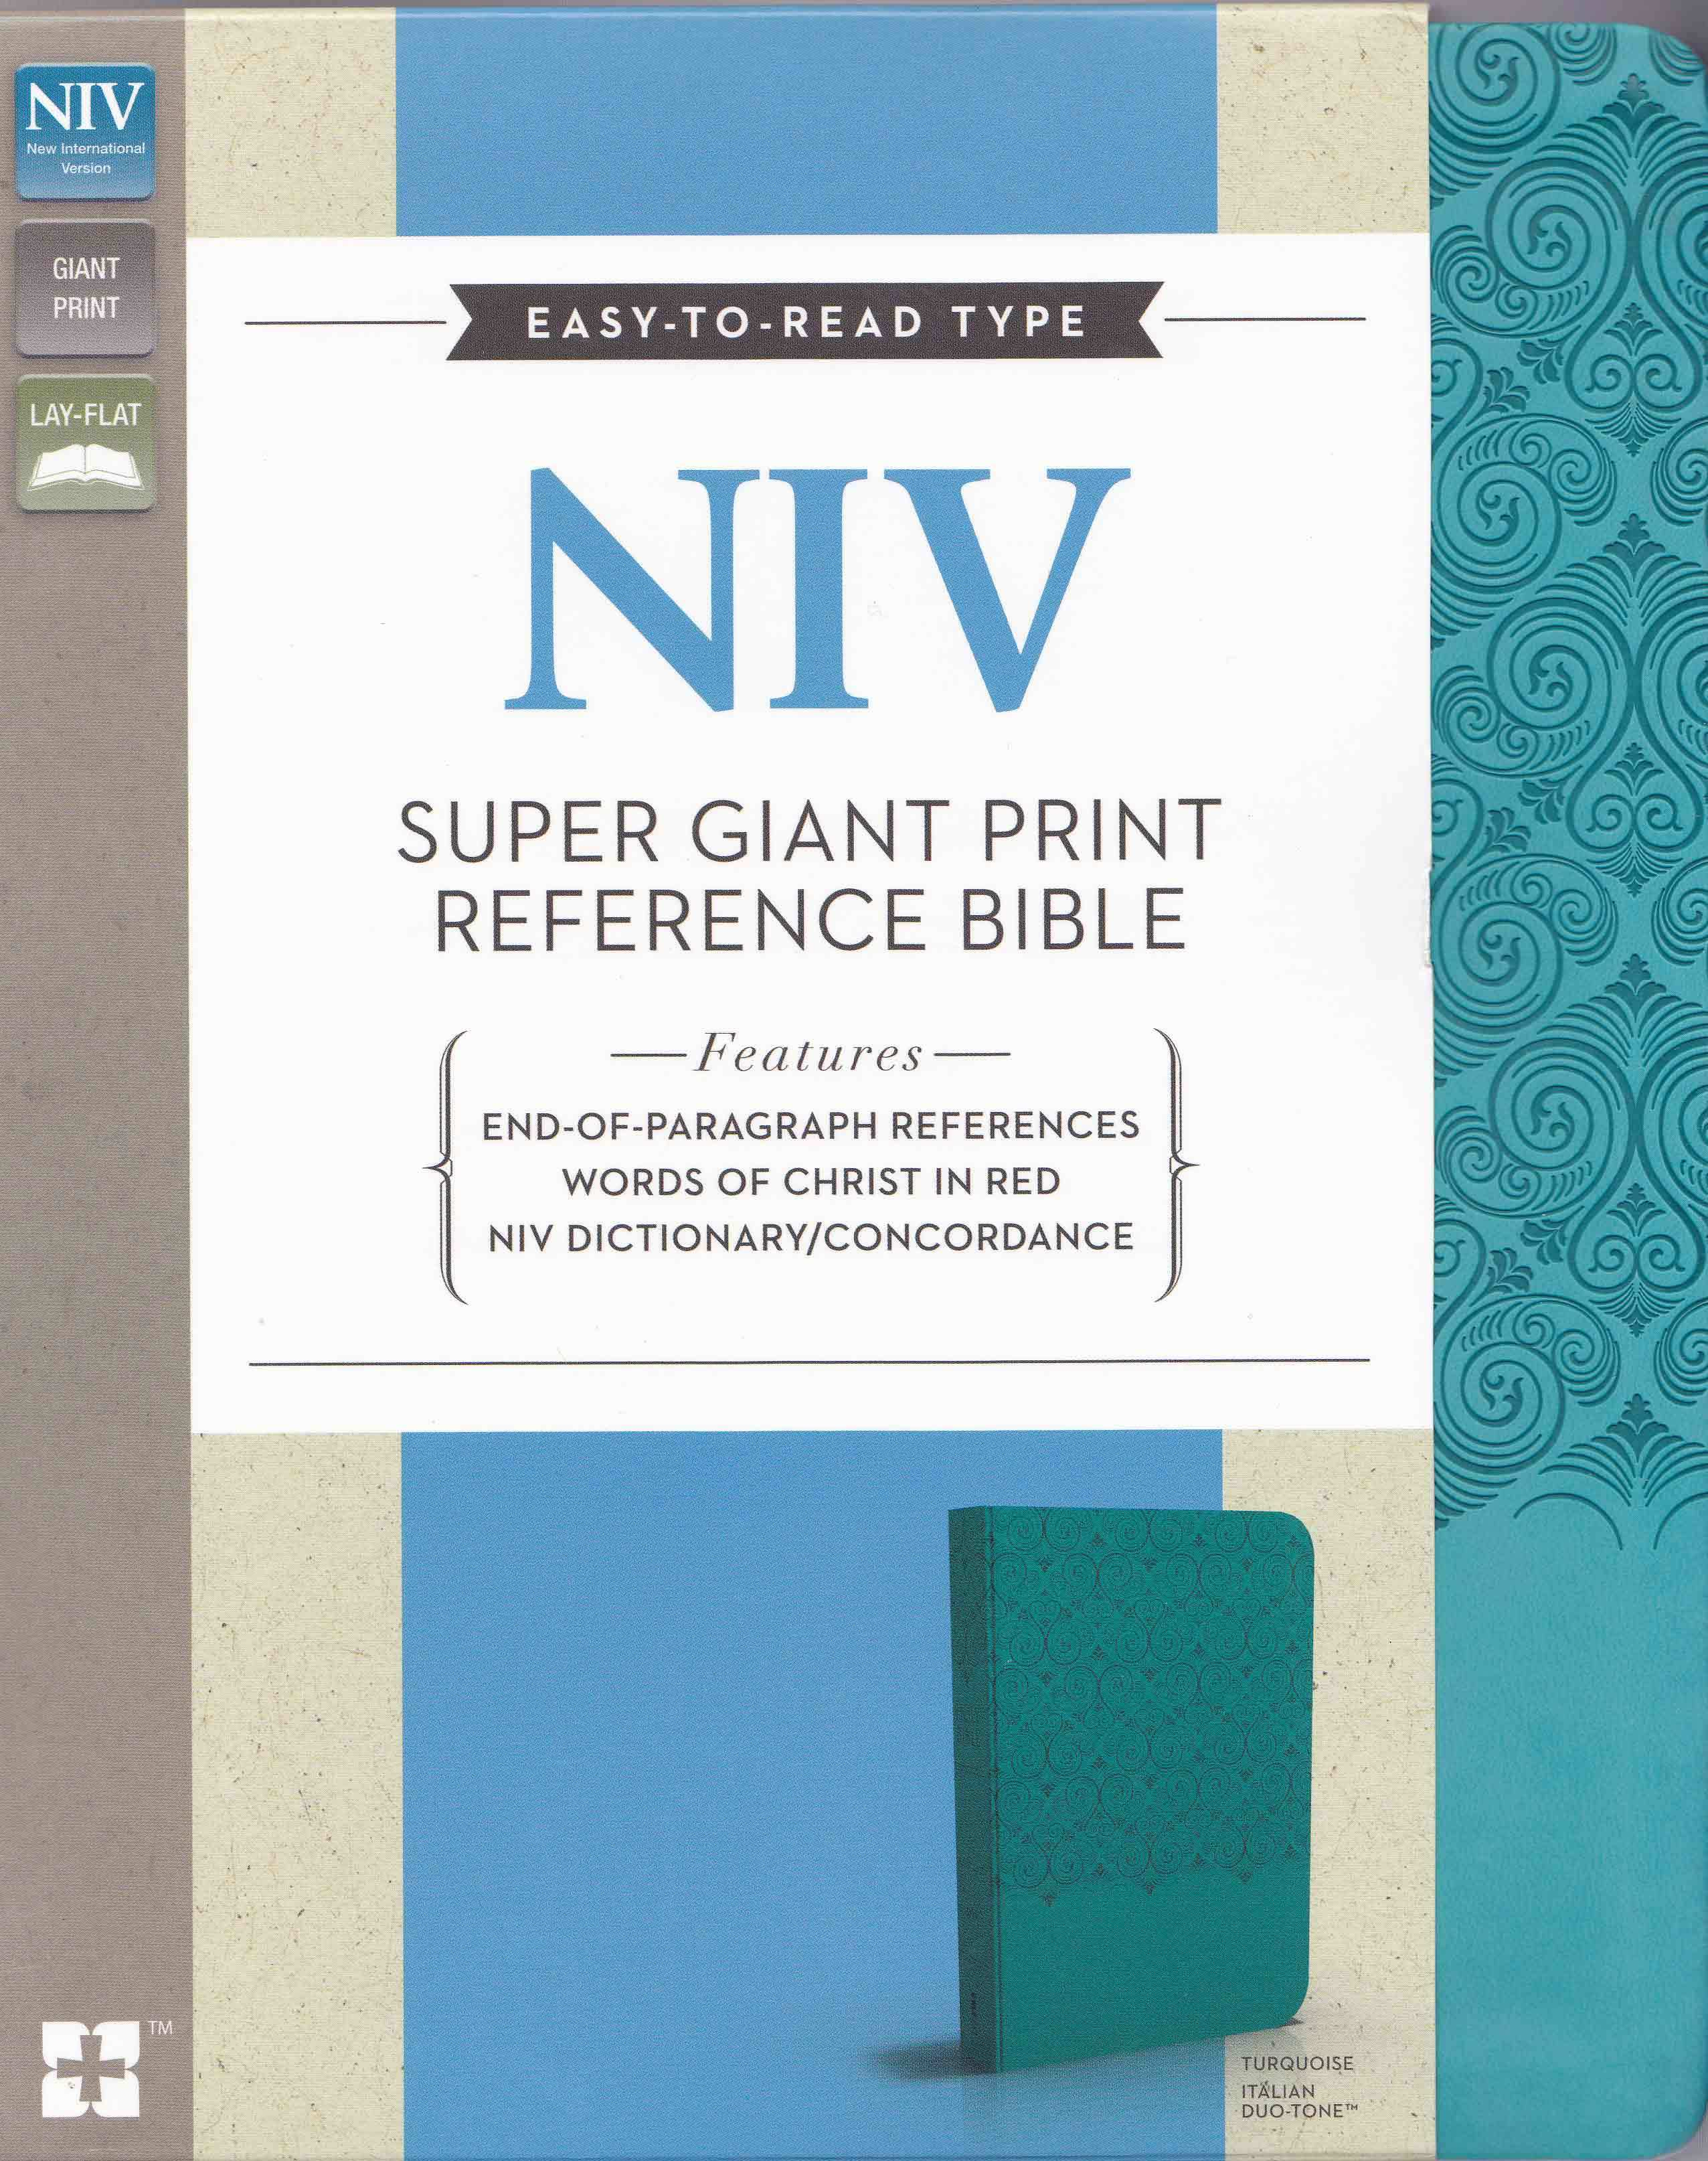 NIV, Super Giant Print Reference Bible, Giant Print, Imitation Leather, Blue, Lay Flat  by  Anonymous